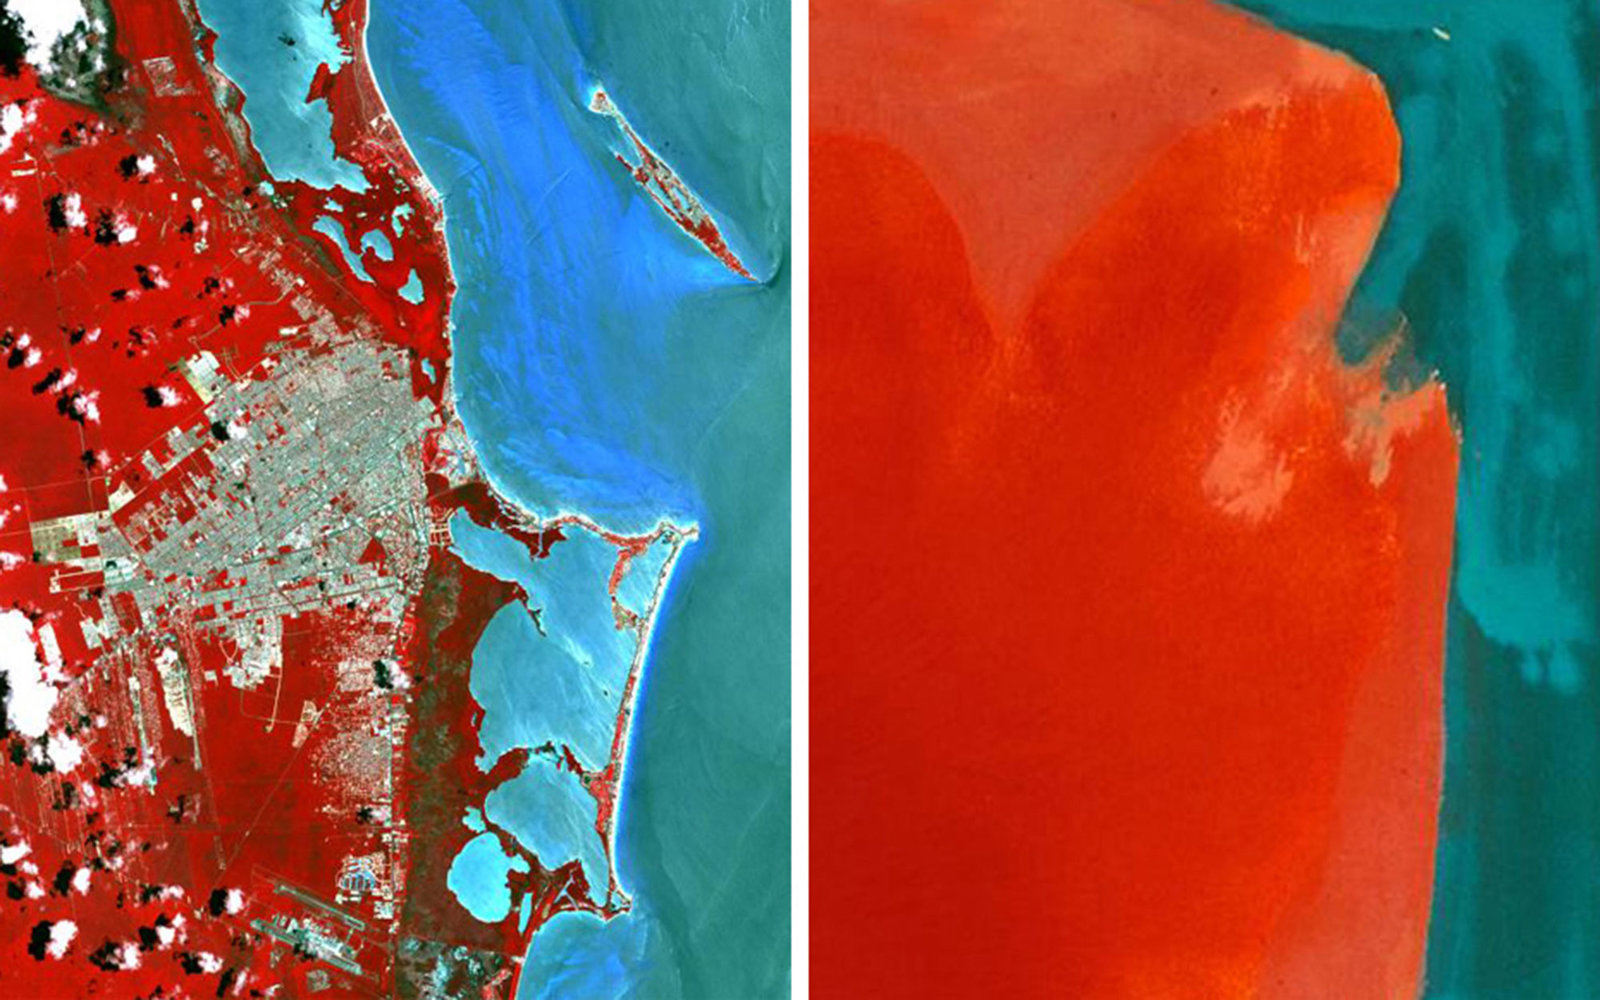 Pictured left: Cancun Mexico on May 14, 2014; Pictured right: Helen Frankenthaler, Canyon, 1965